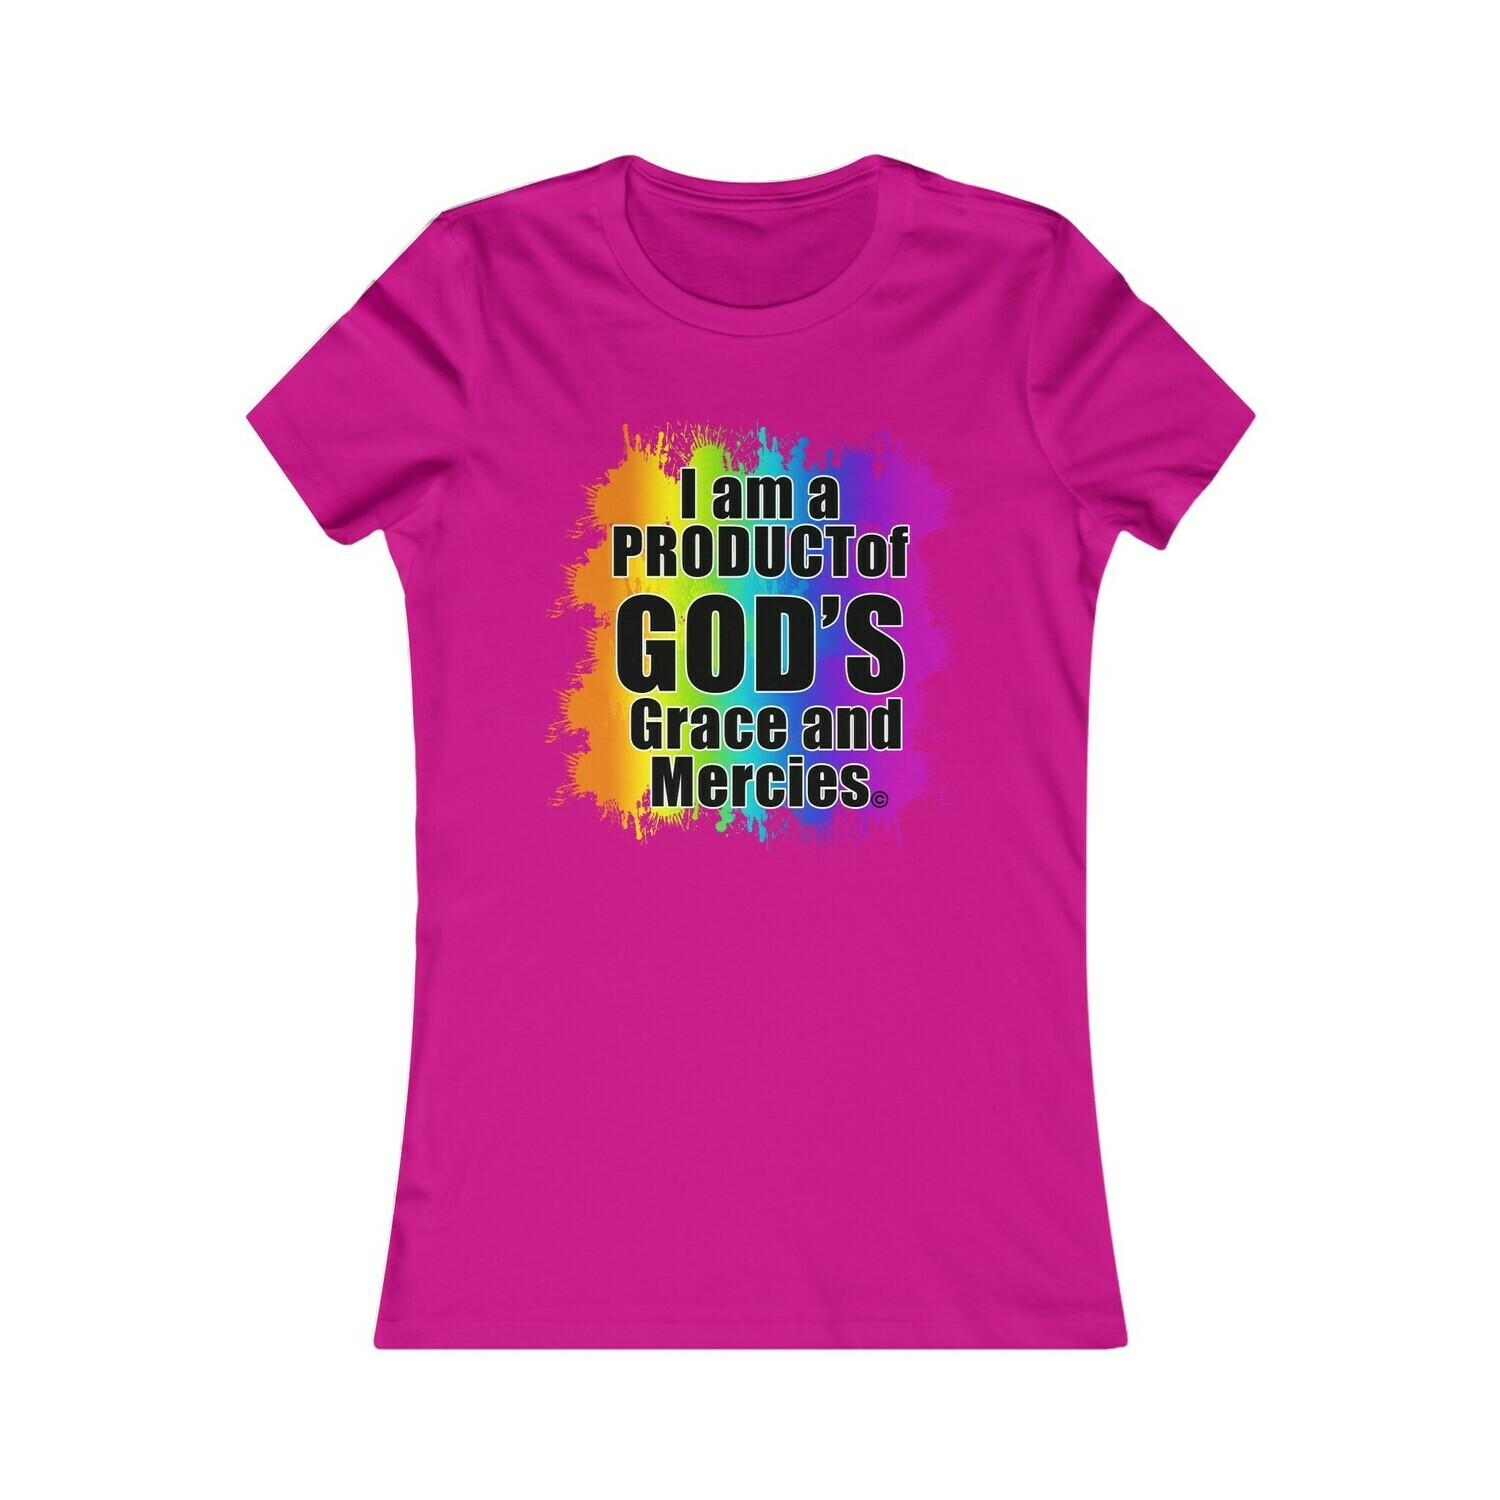 PRODUCT OF GOD'S GRACE AND MERCIES - WOMEN'S BLOUSE